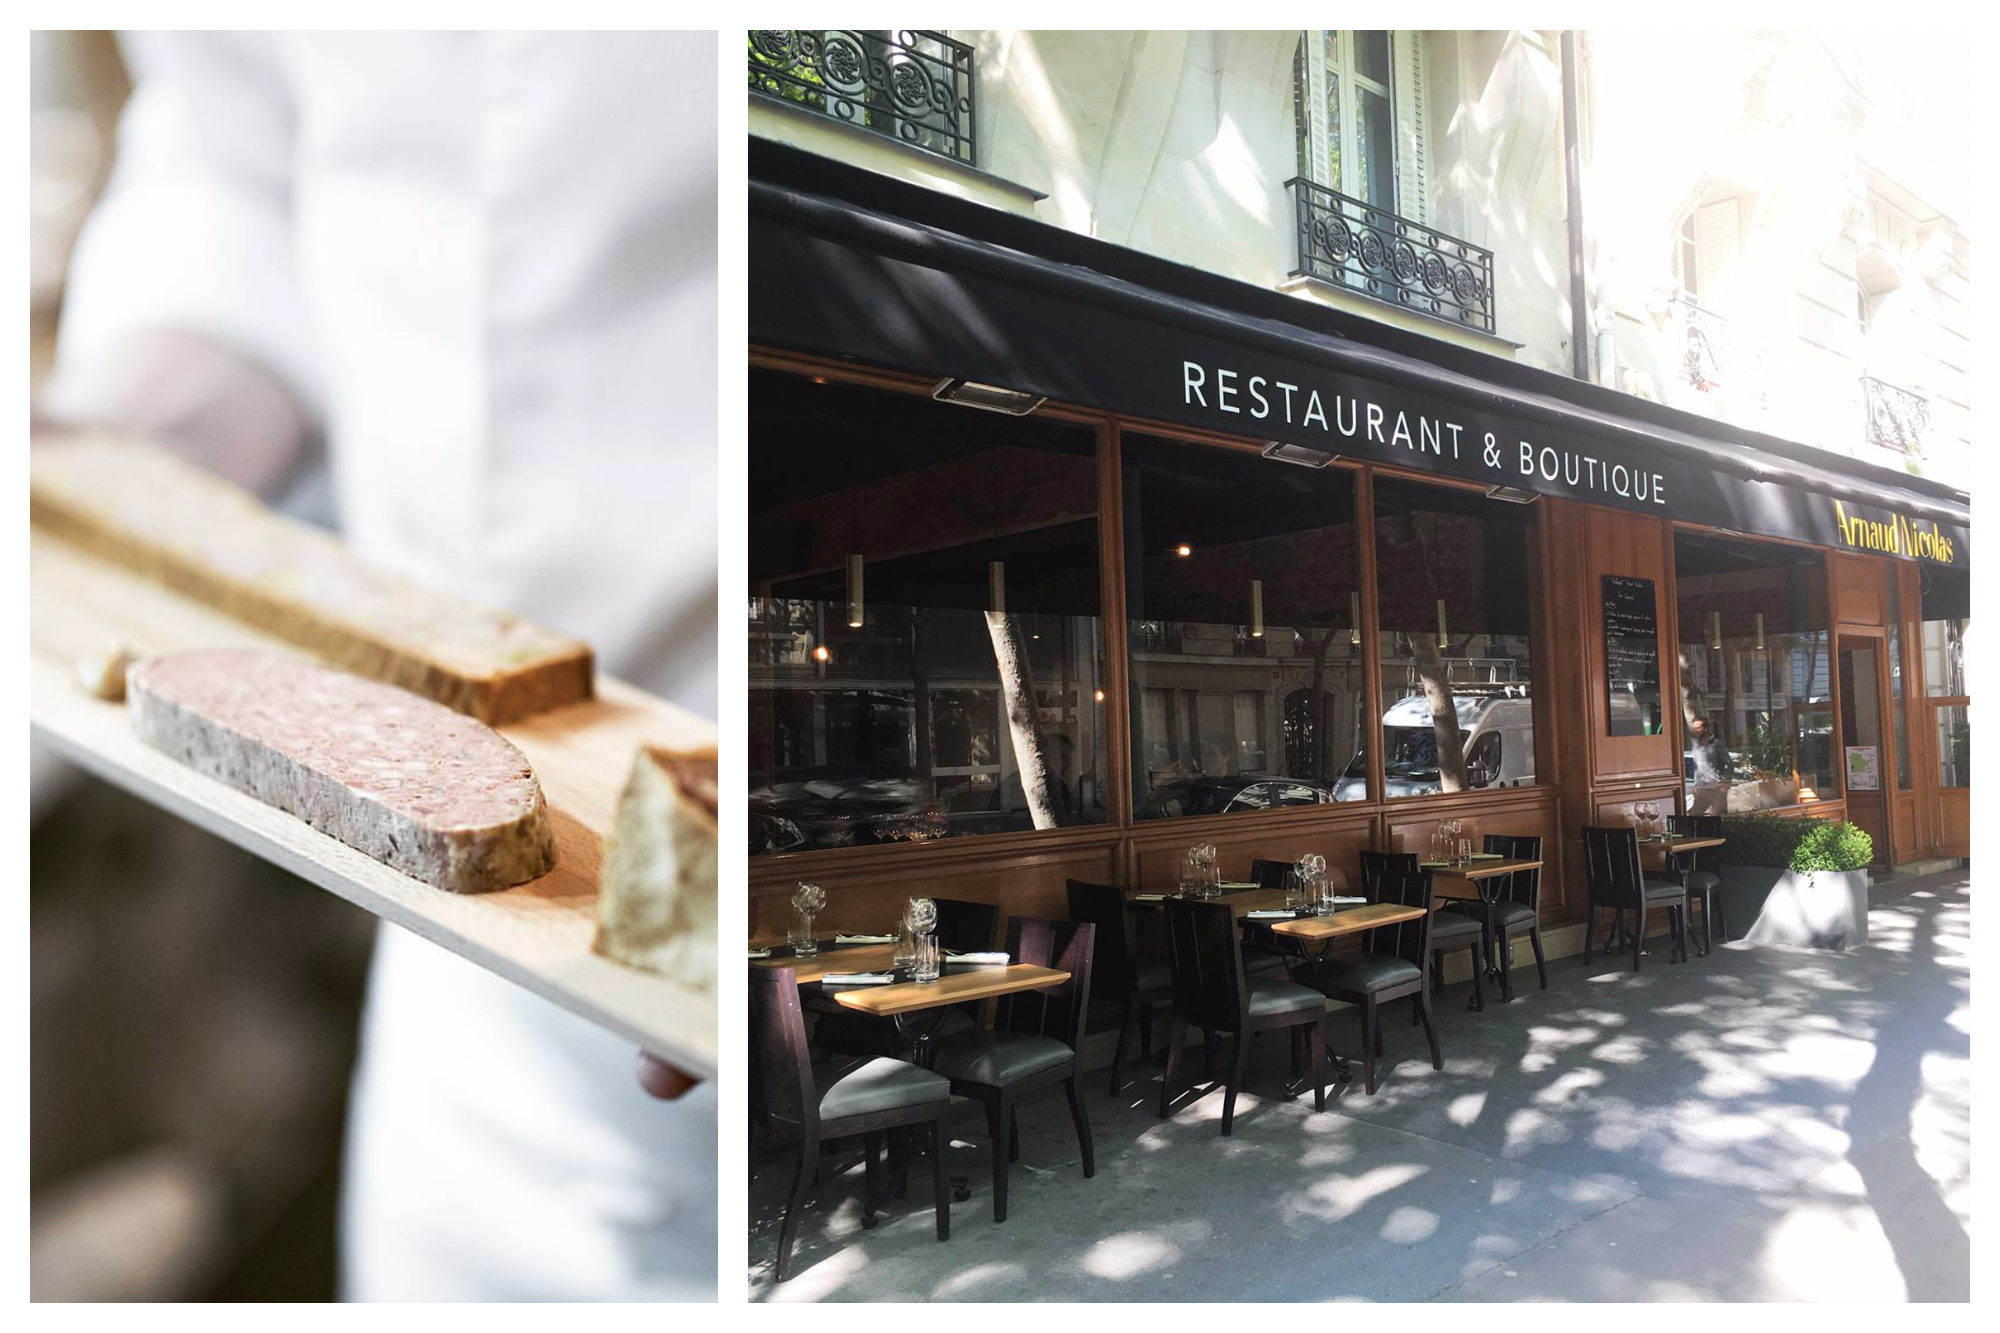 A slab of homemade terrine (left) and the outdoor terrace seating in the sunshine (right) at Arnaud Nicolas' restaurant near the Eiffel Tower in Paris.